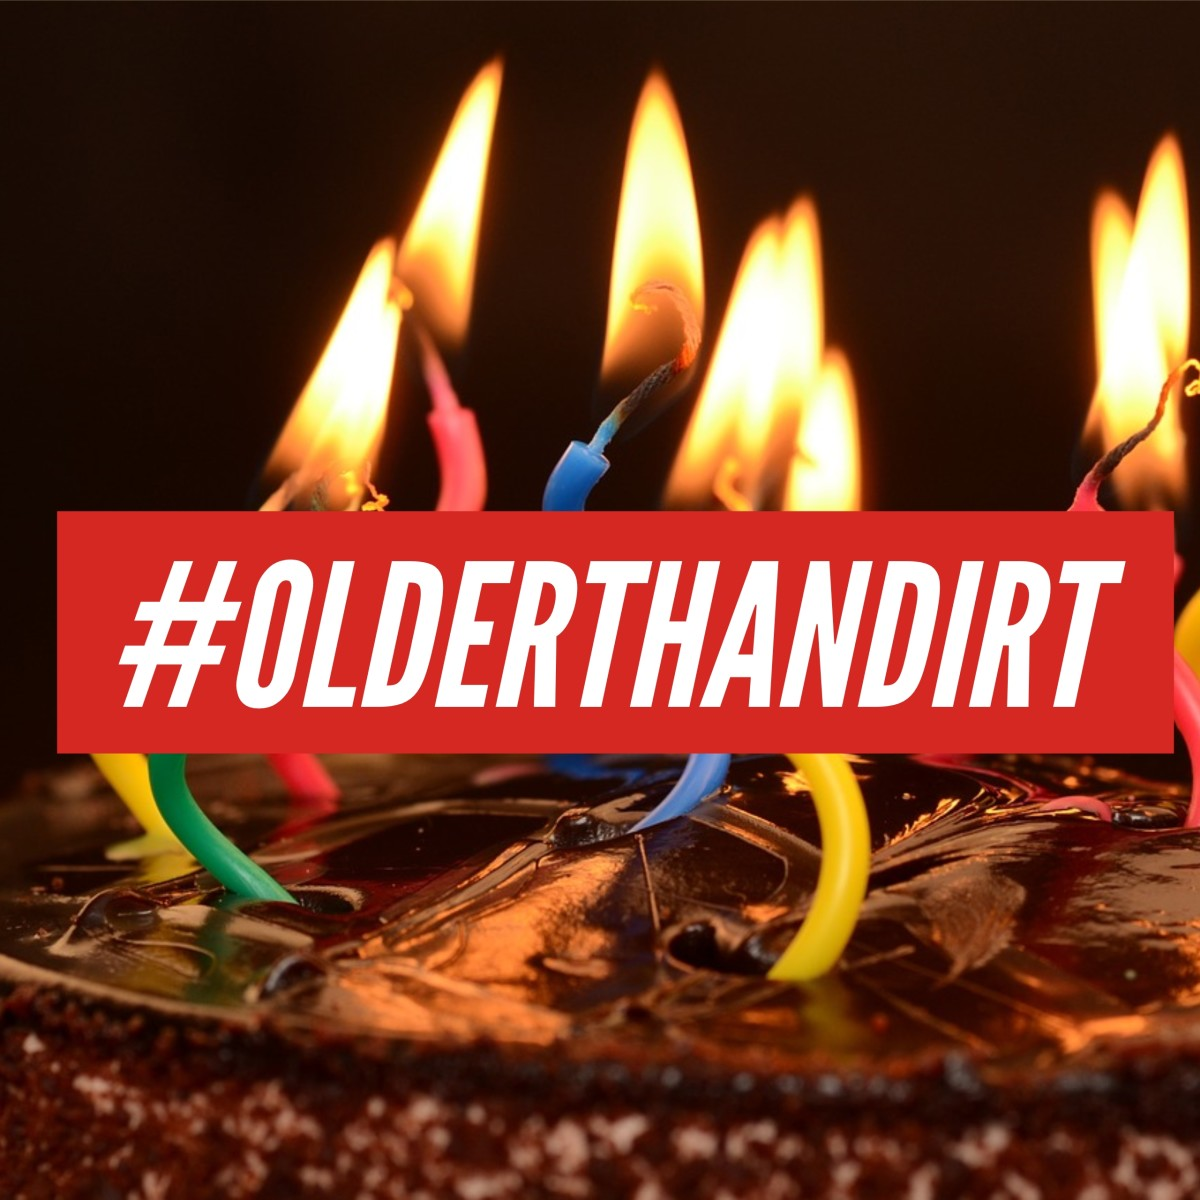 Add an extra level of humor to a birthday cake by putting a hashtag word on it. Here's a suggestion #OlderThanDirt